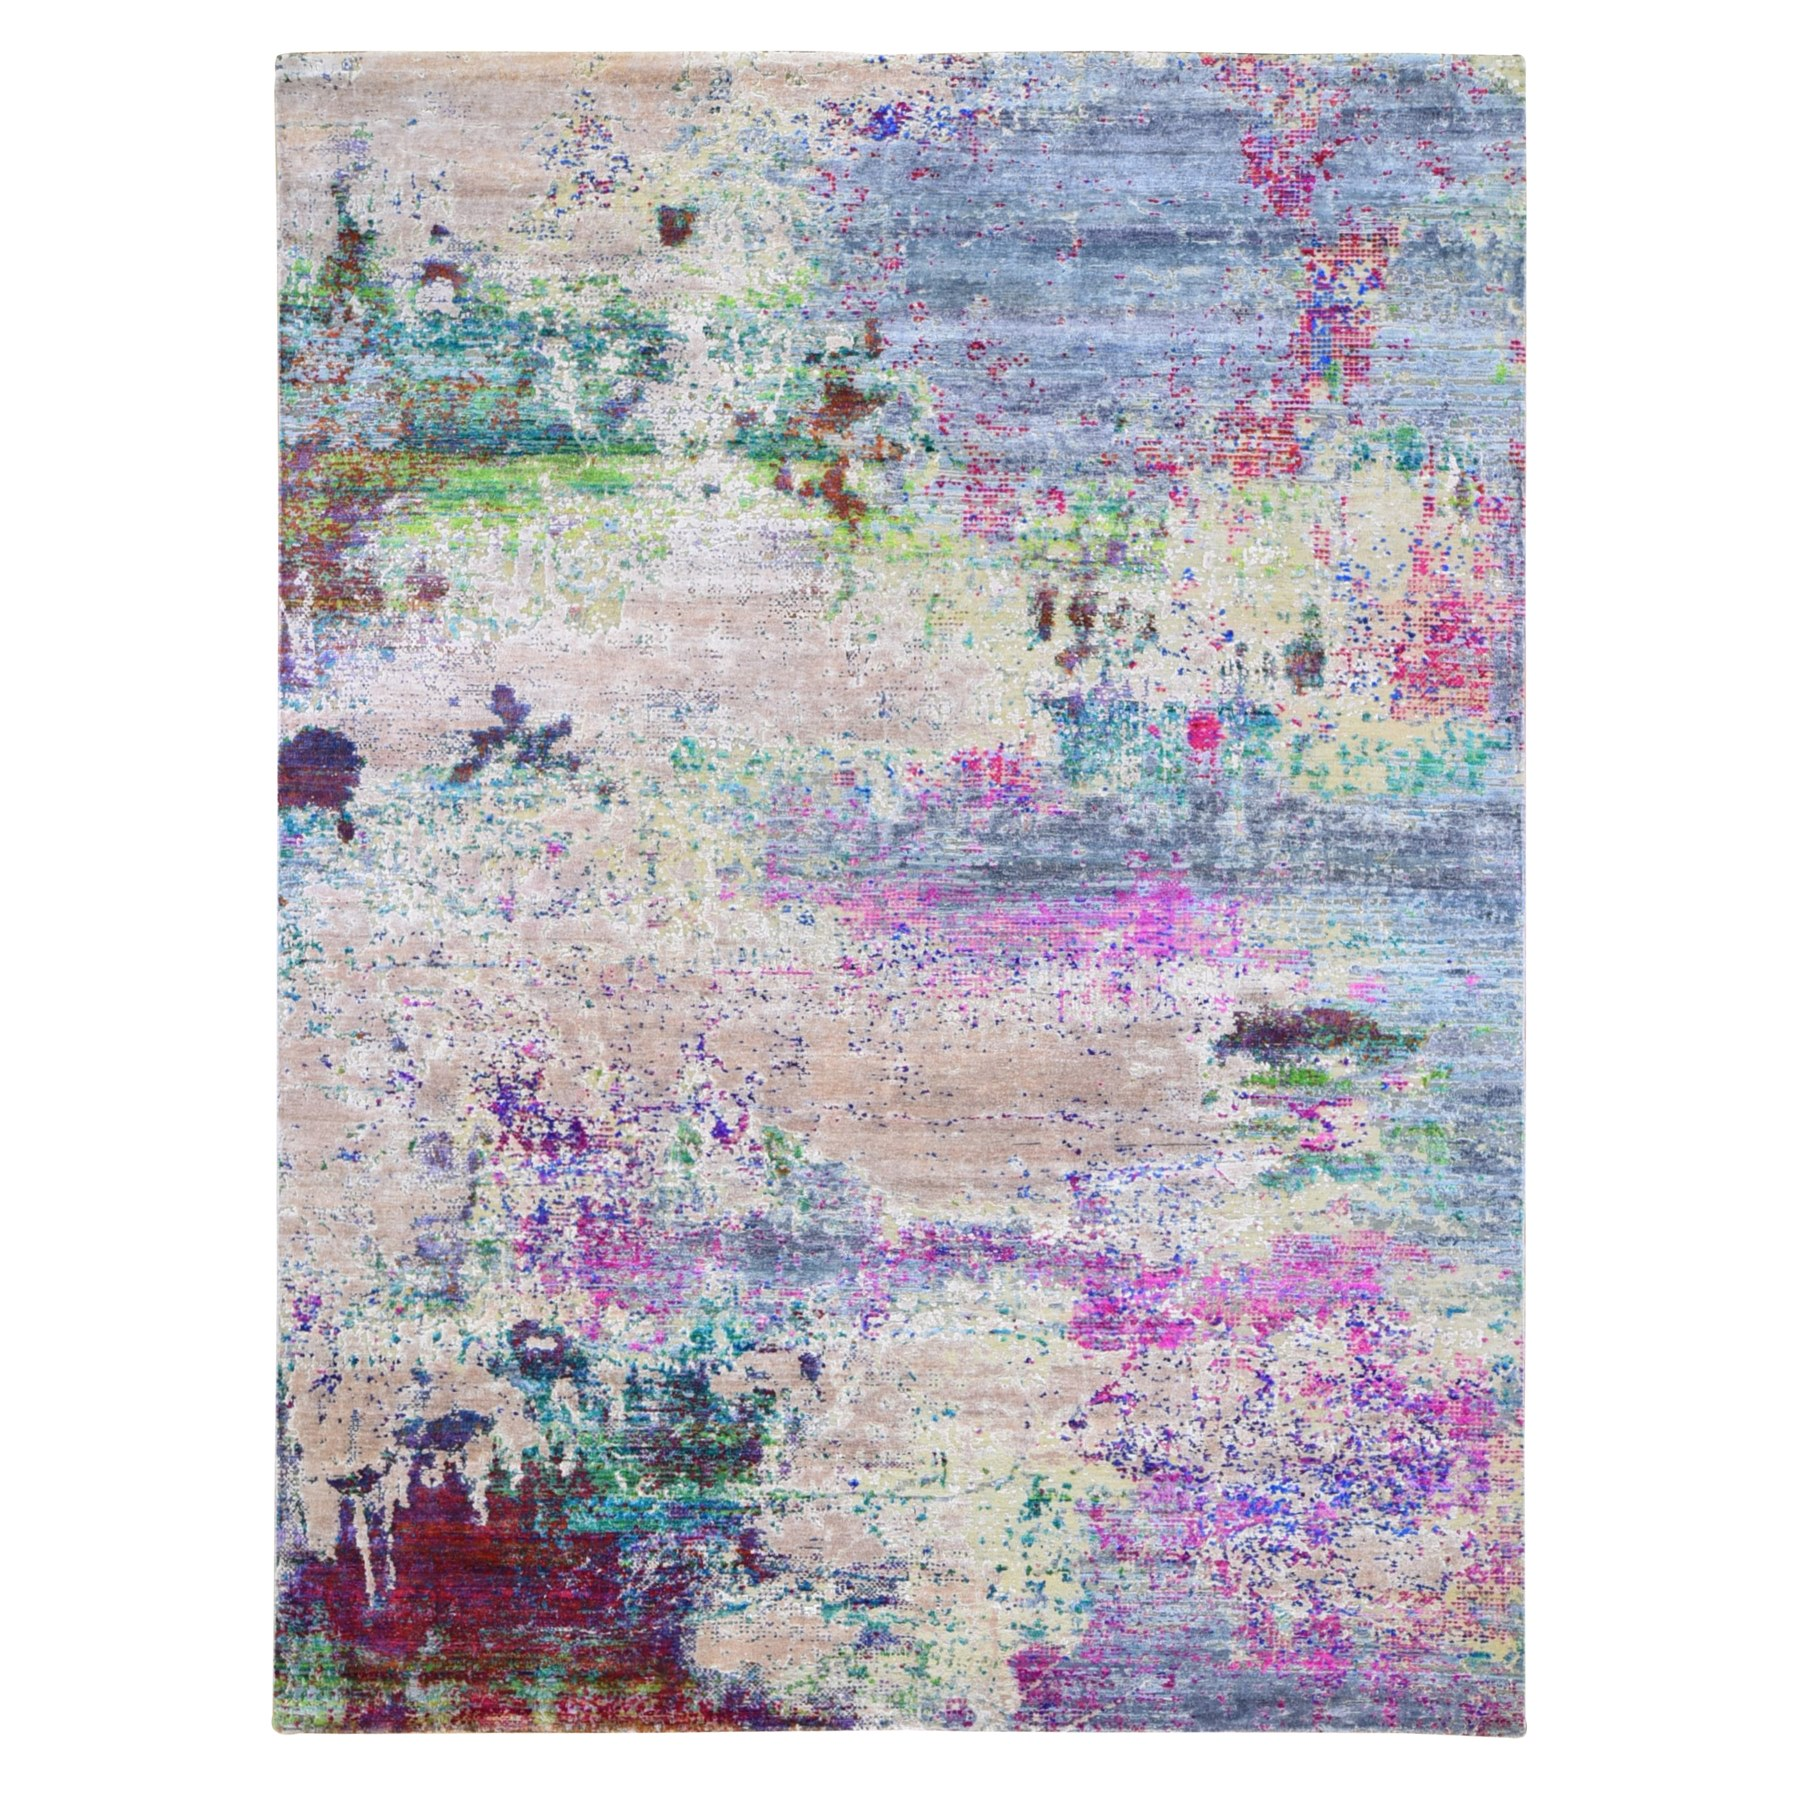 9'x12' Sari Silk with Pastel Colors Abstract Design Hand Woven Oriental Rug